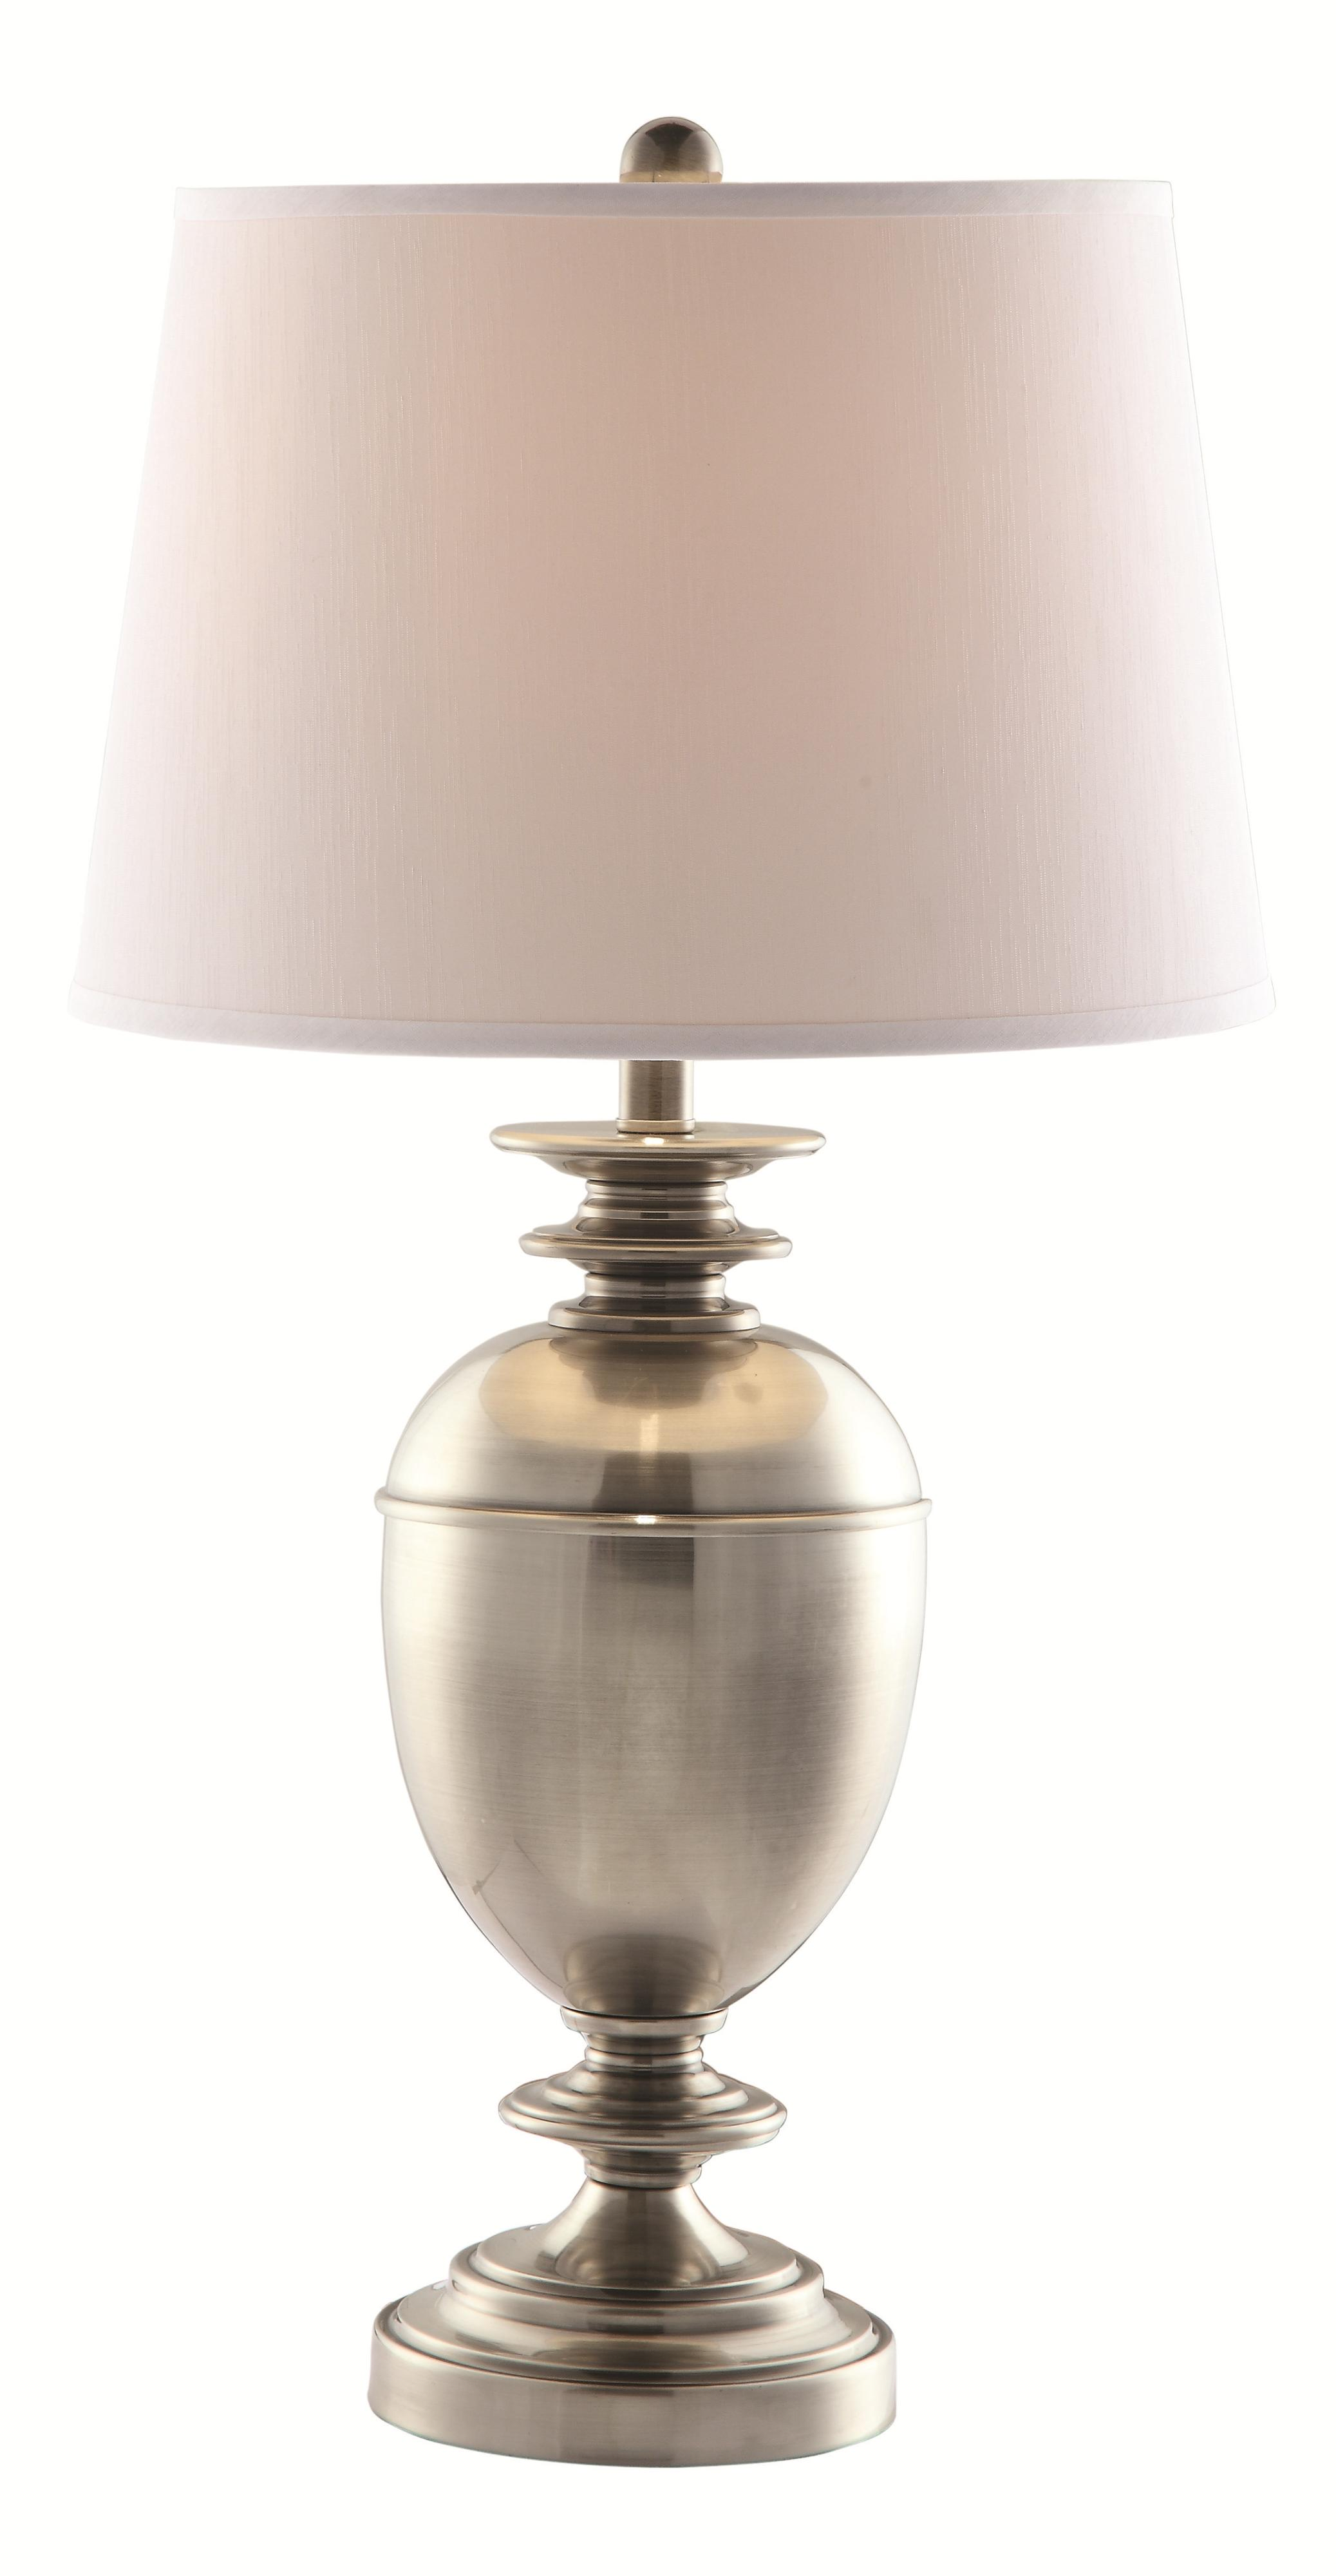 Coaster Table Lamps Table Lamp - Item Number: 901330